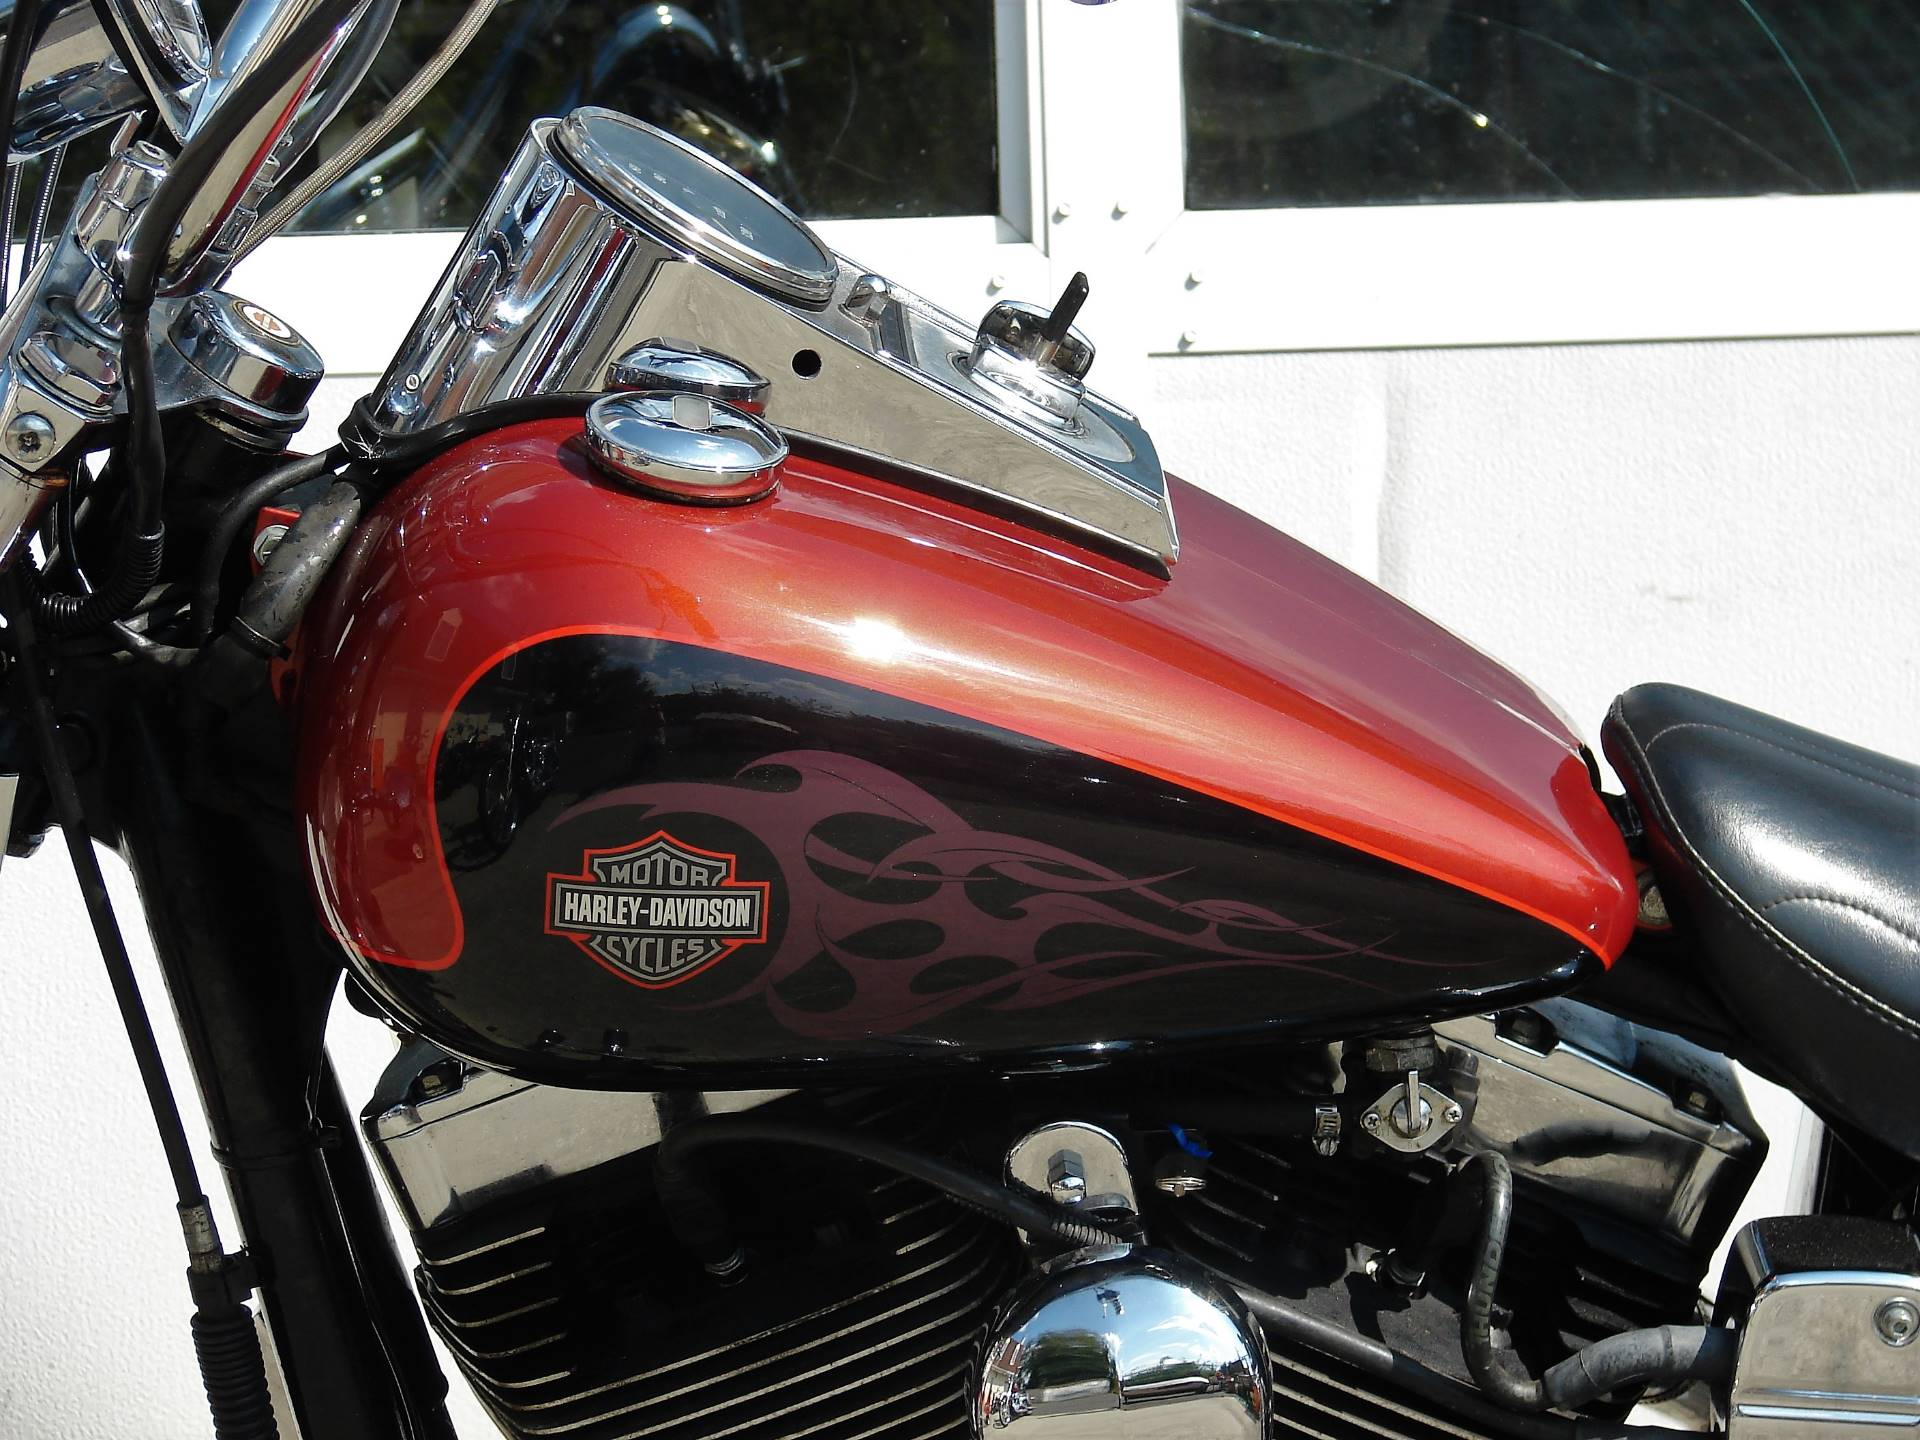 2000 Harley-Davidson FXDWG Dyna Wide Glide in Williamstown, New Jersey - Photo 14